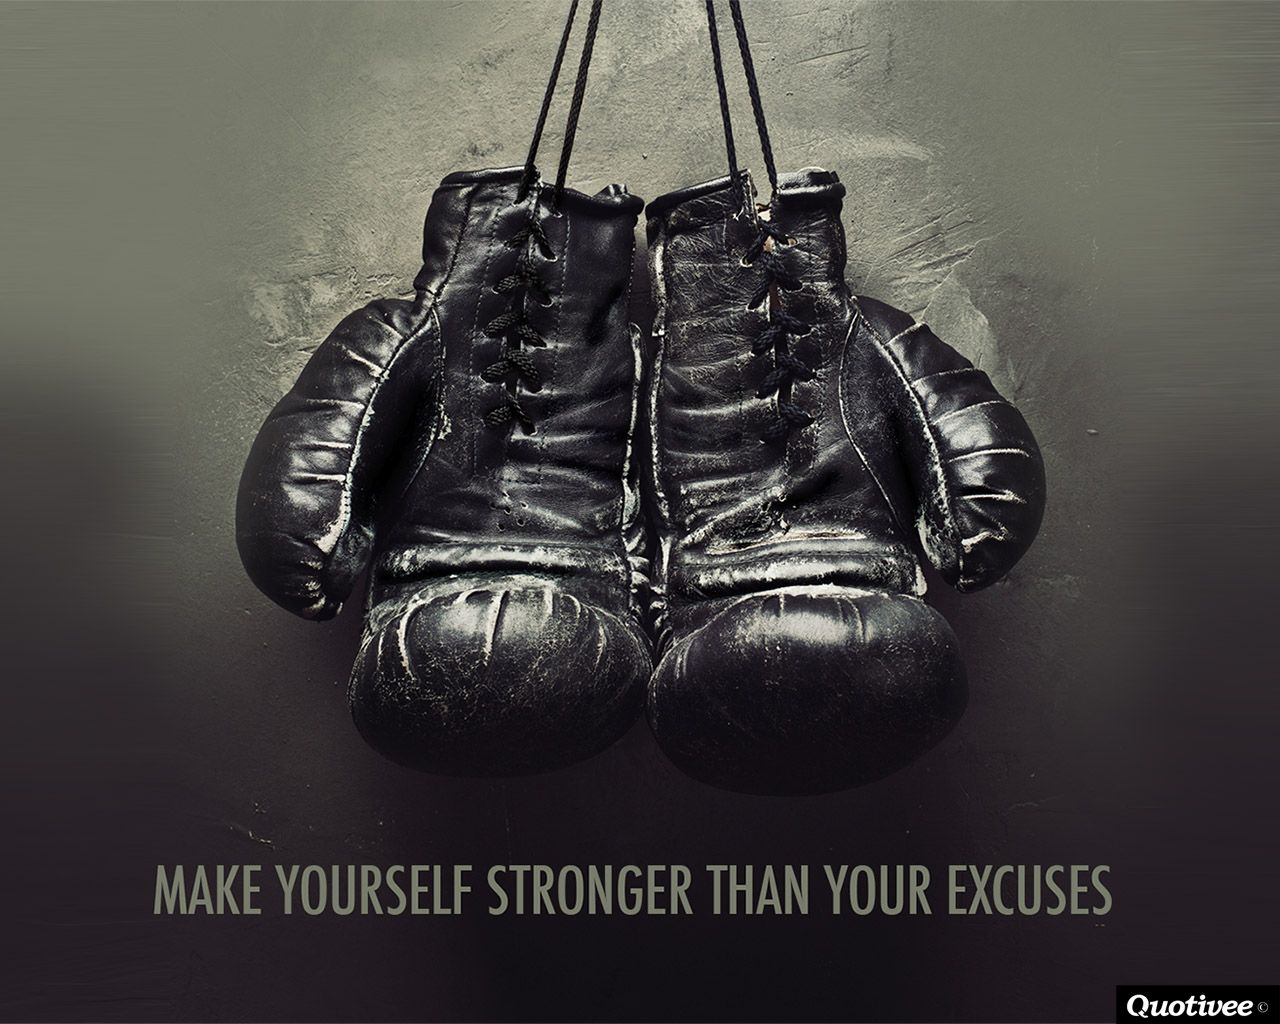 1280x1024 - Boxing Wallpapers 6